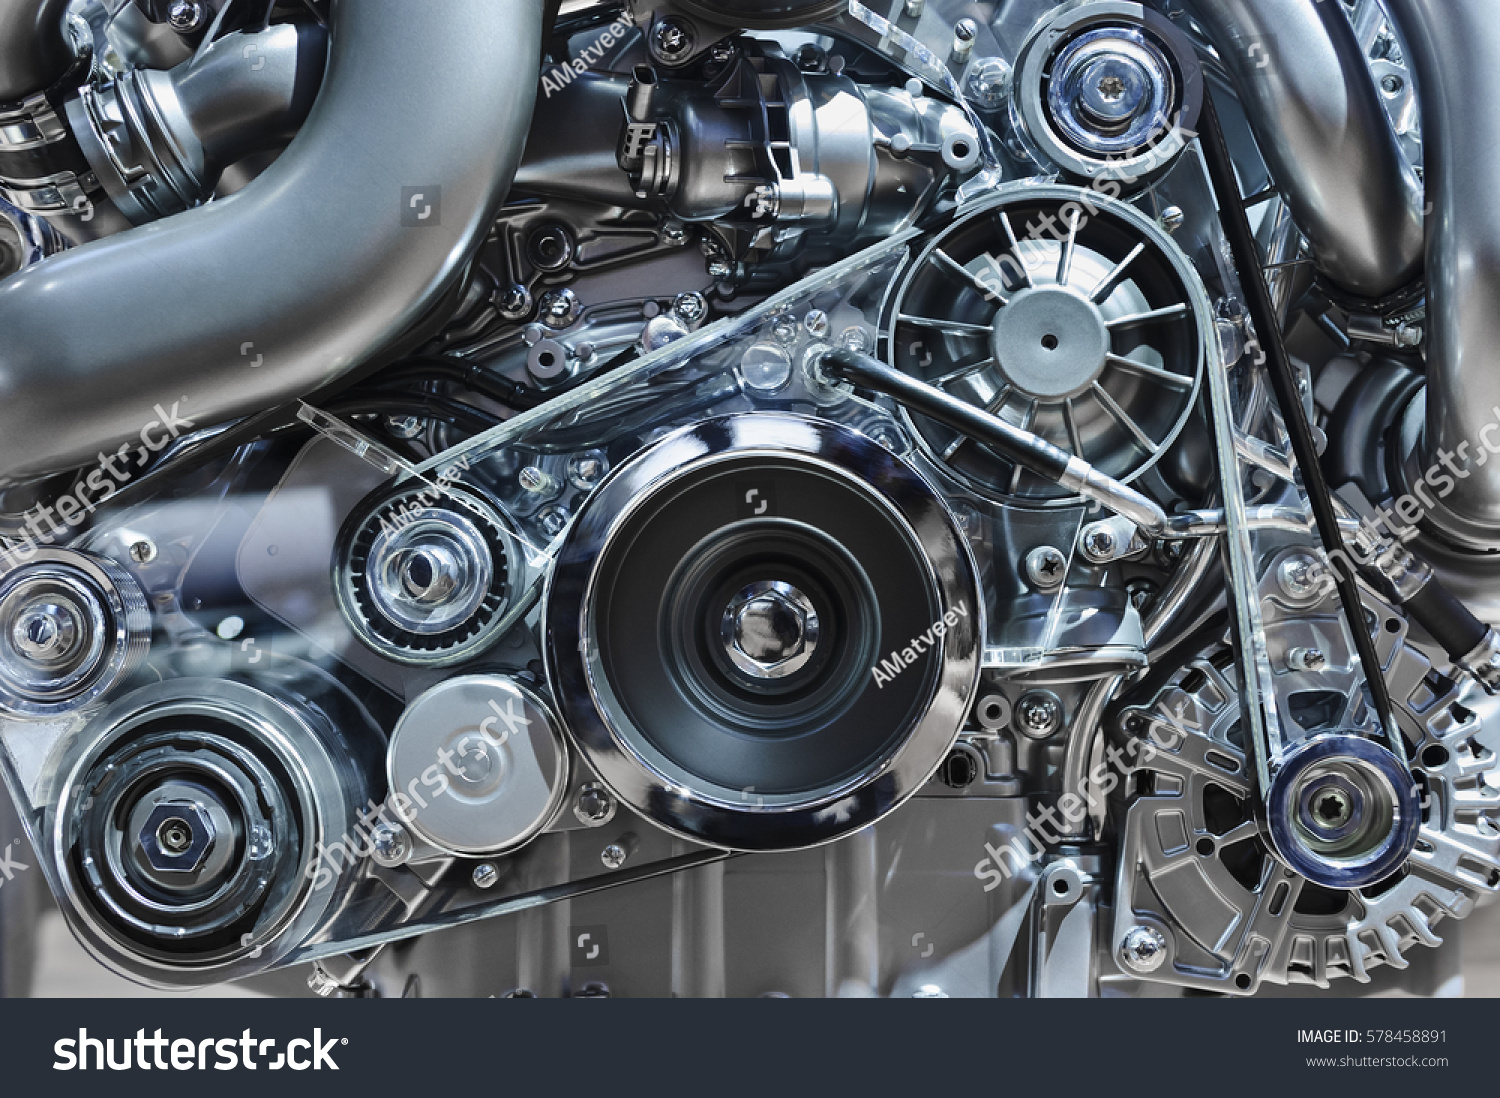 4 best images of 72 vw beetle wiring diagram images of engine parts of vehicle car engine concept modern vehicle motor stock photo #7